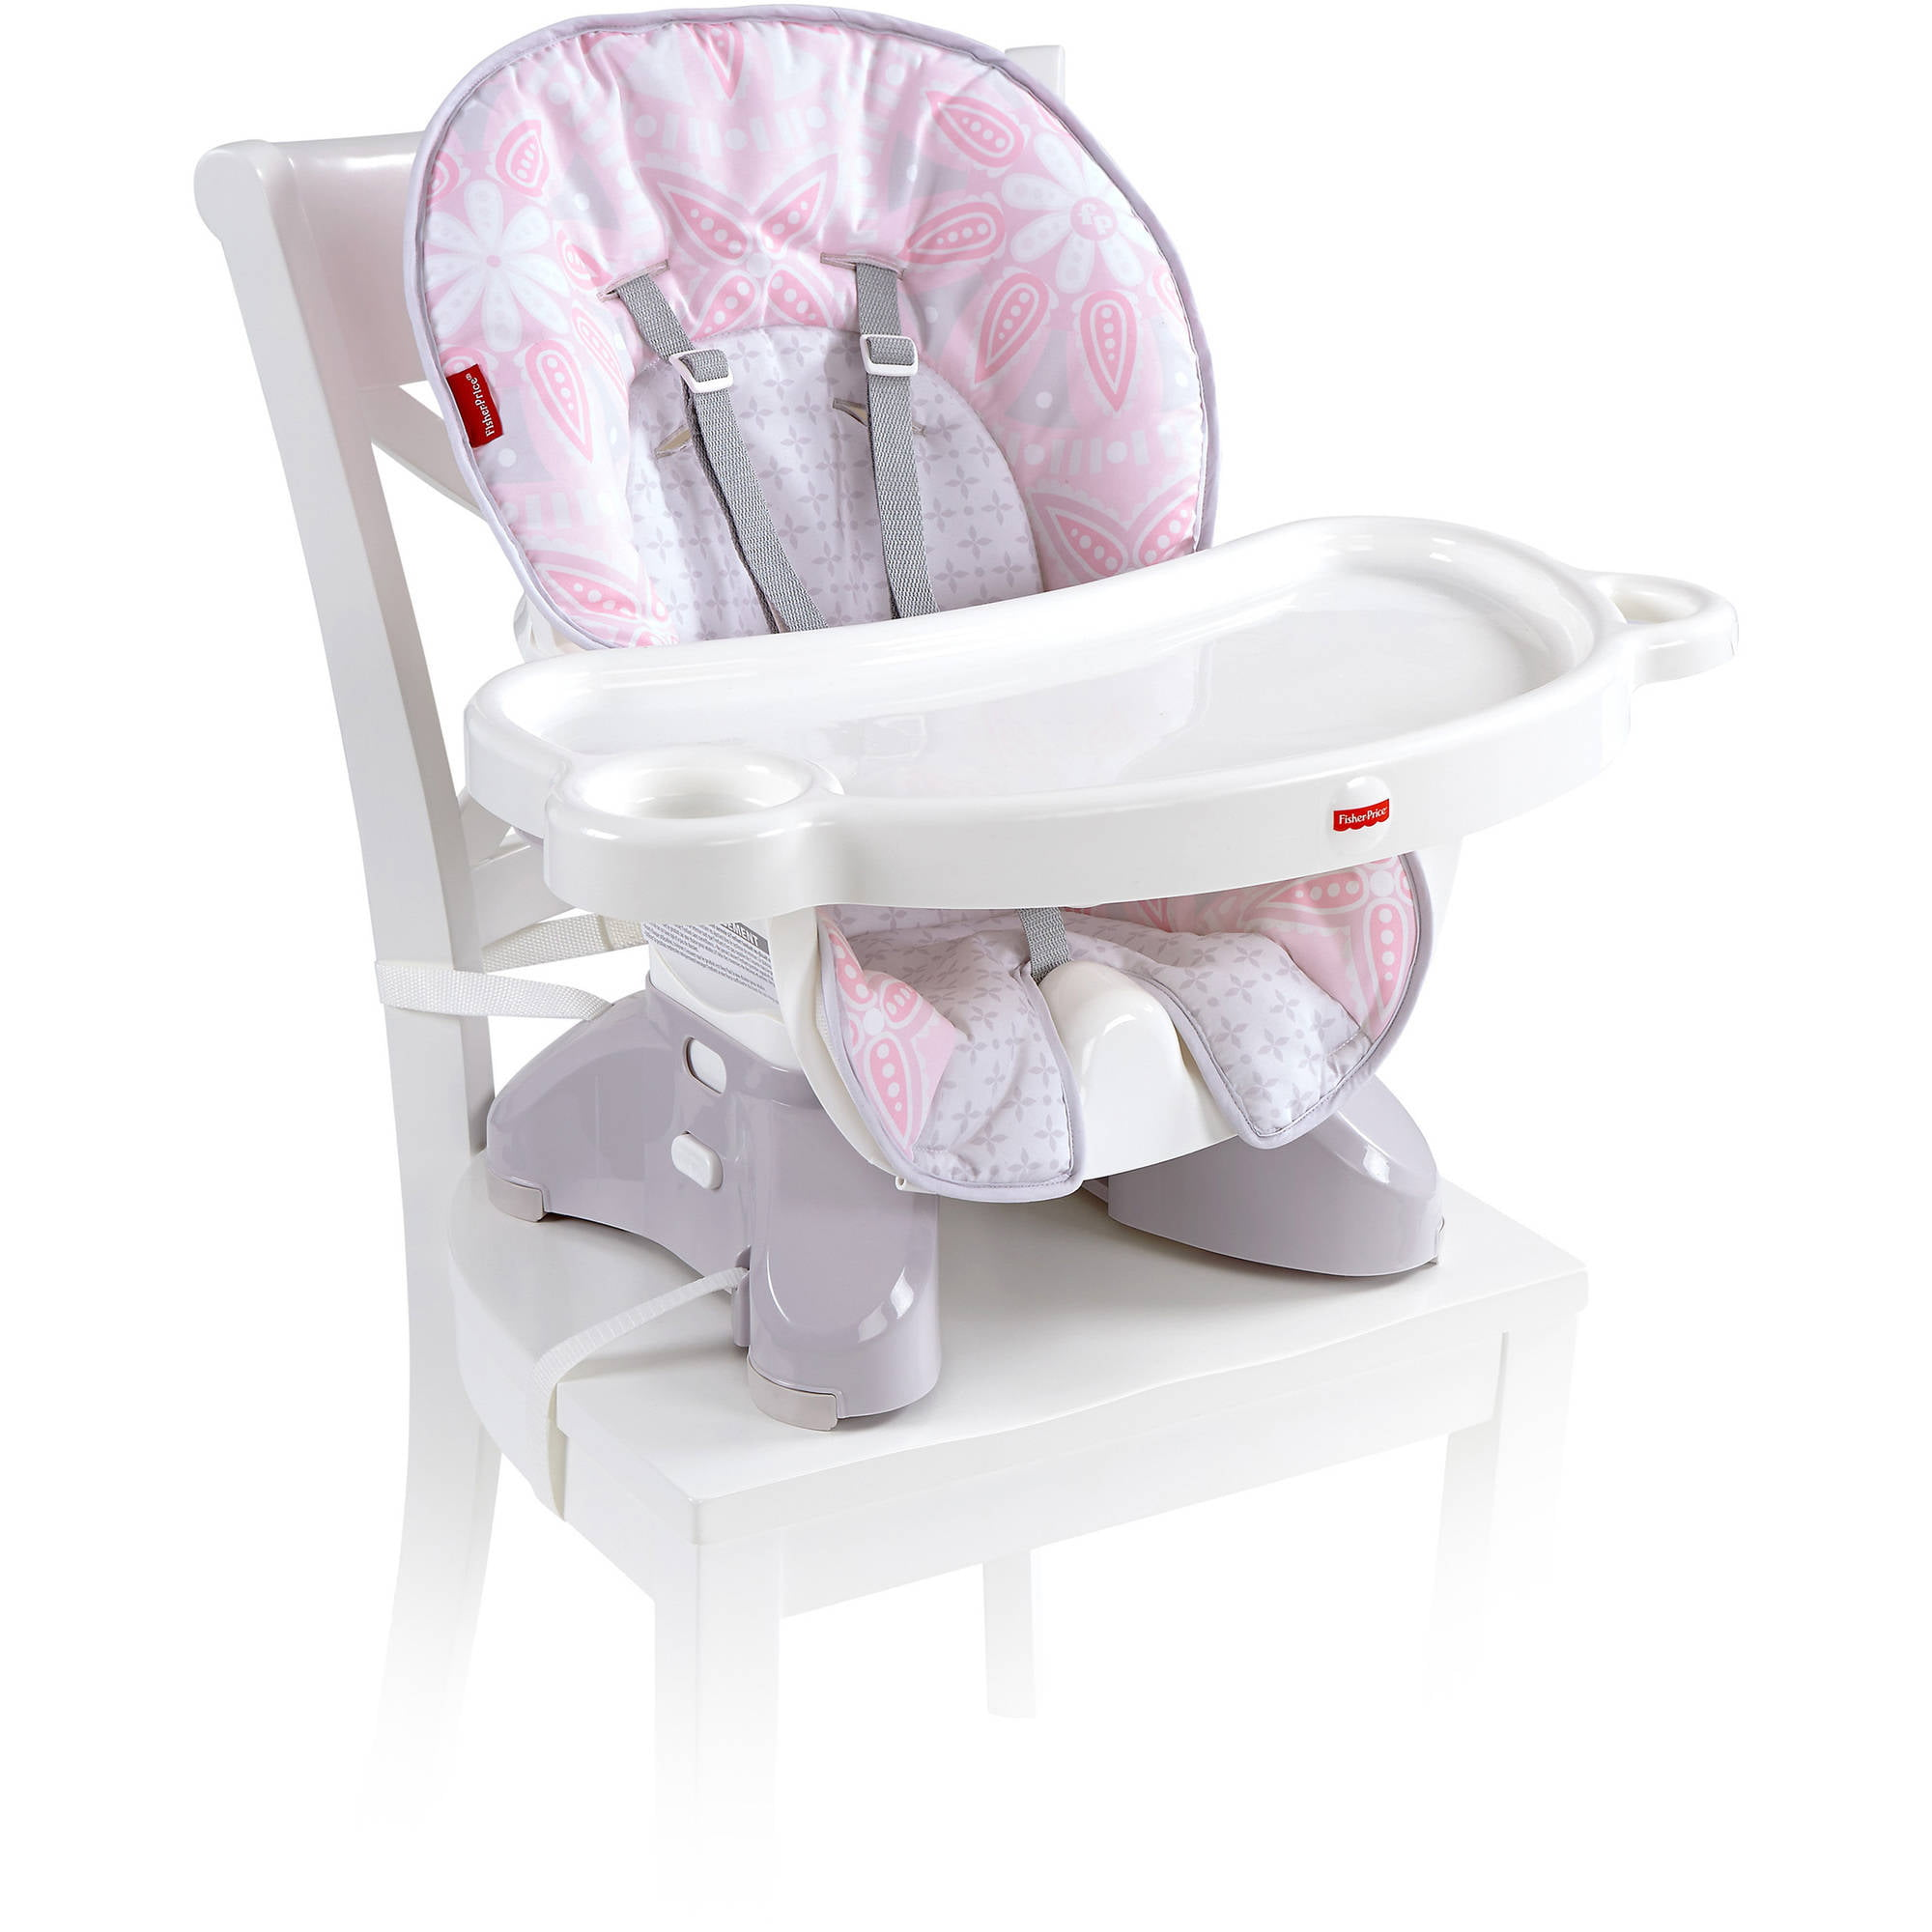 Fisher Price SpaceSaver High Chair   Walmart.com